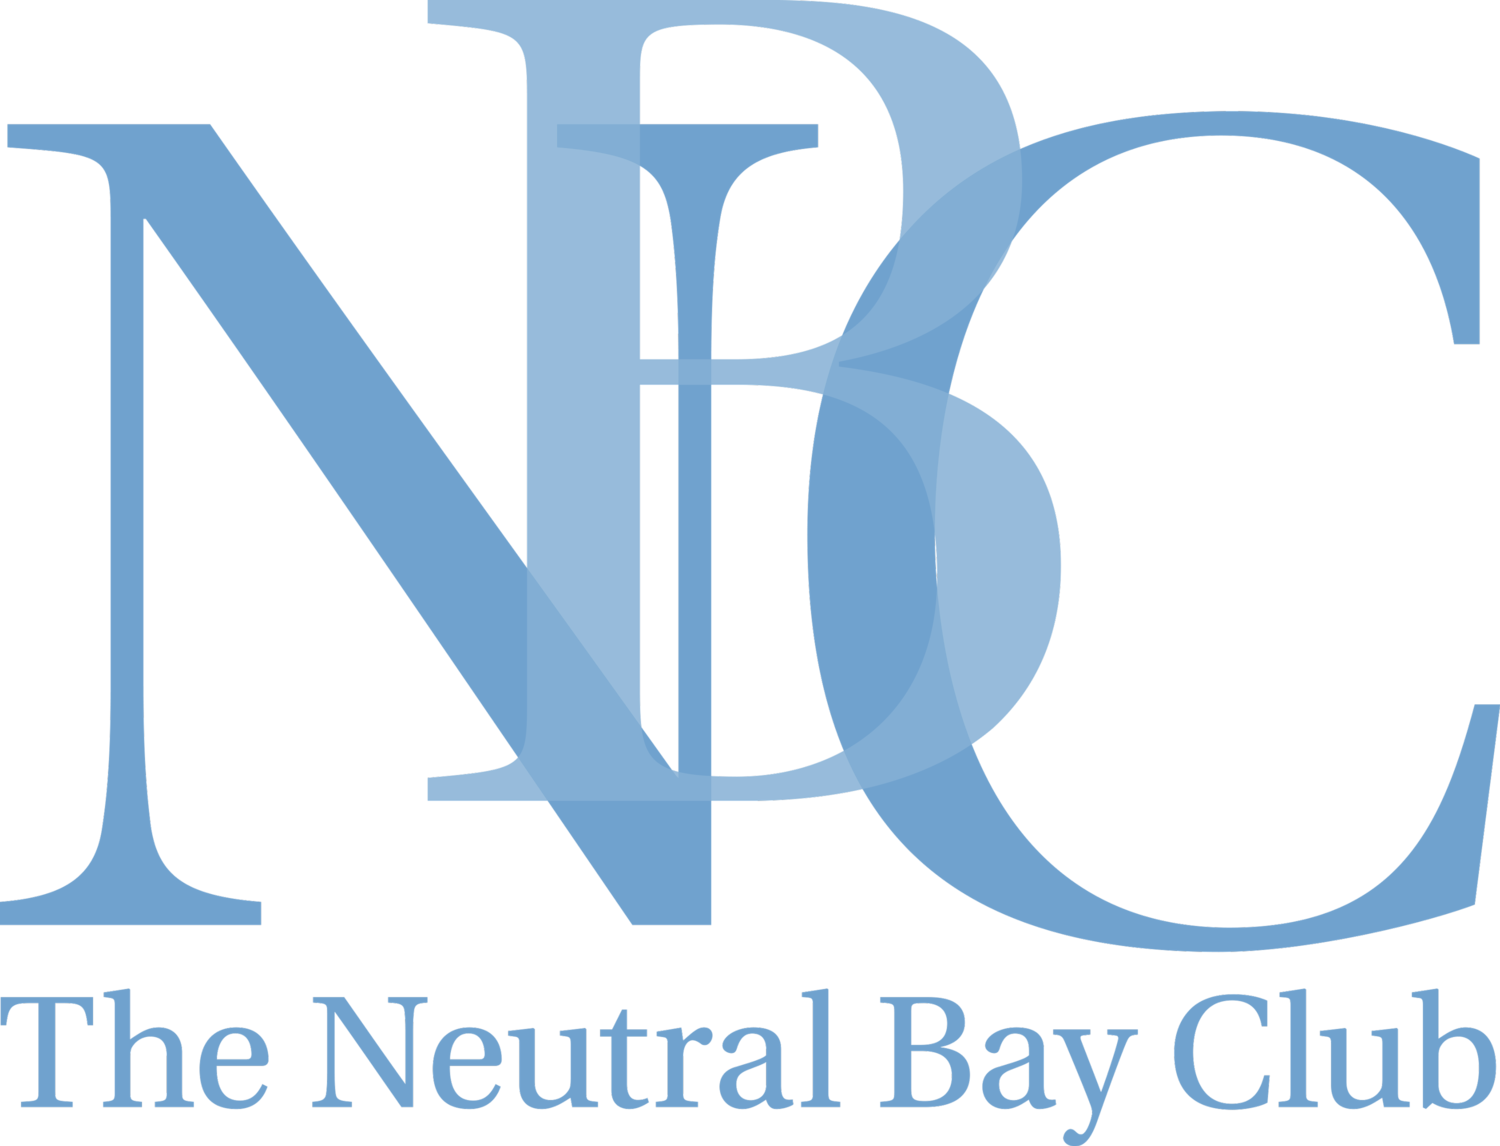 The Neutral Bay Club - Tennis, Bowls, Social, Functions